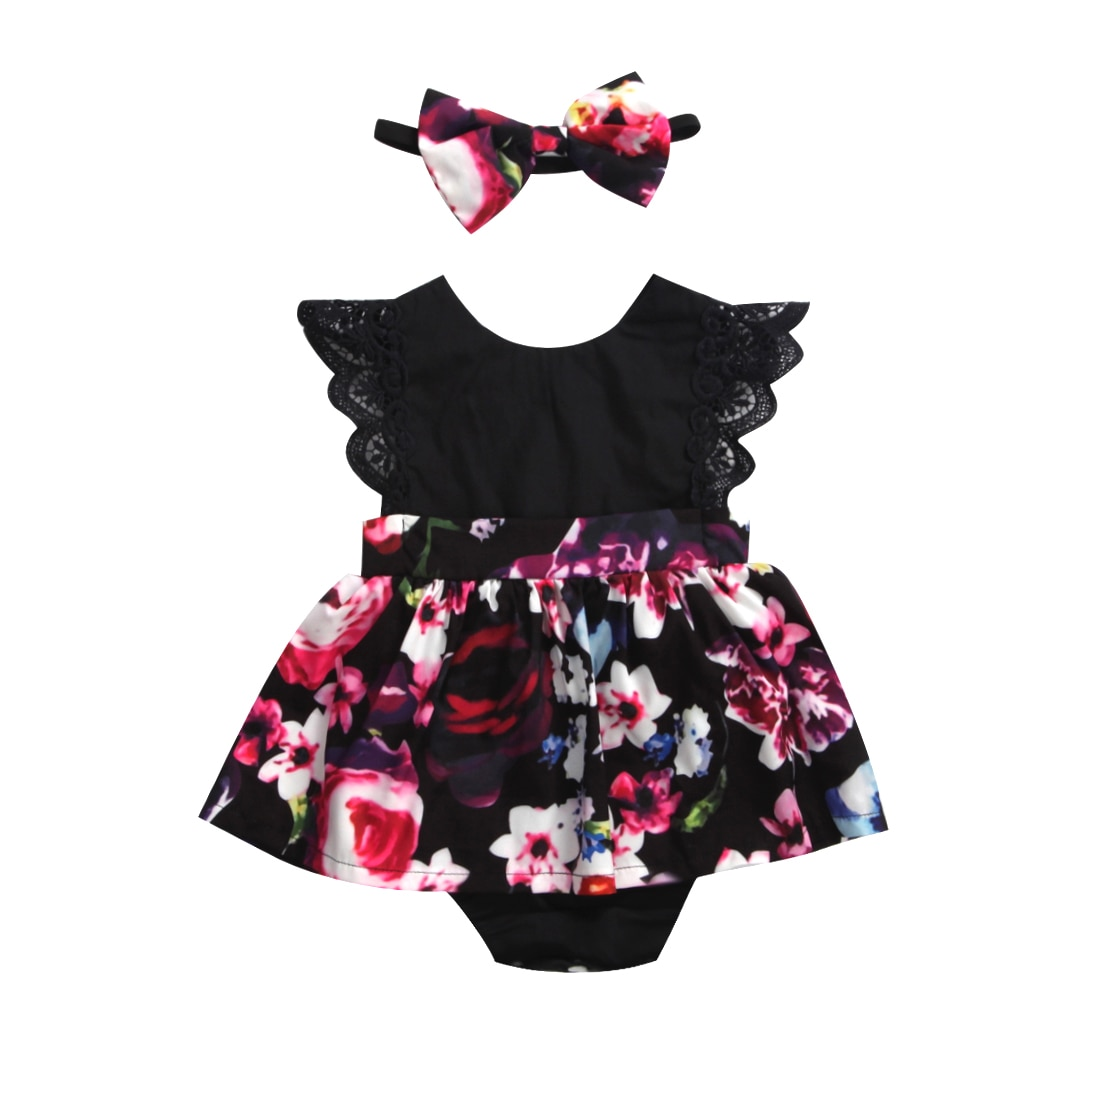 2019 FOCUSNORM Newborn Baby Infant Girl Romper Tutu Dress Headband Floral Outfits Party Dress